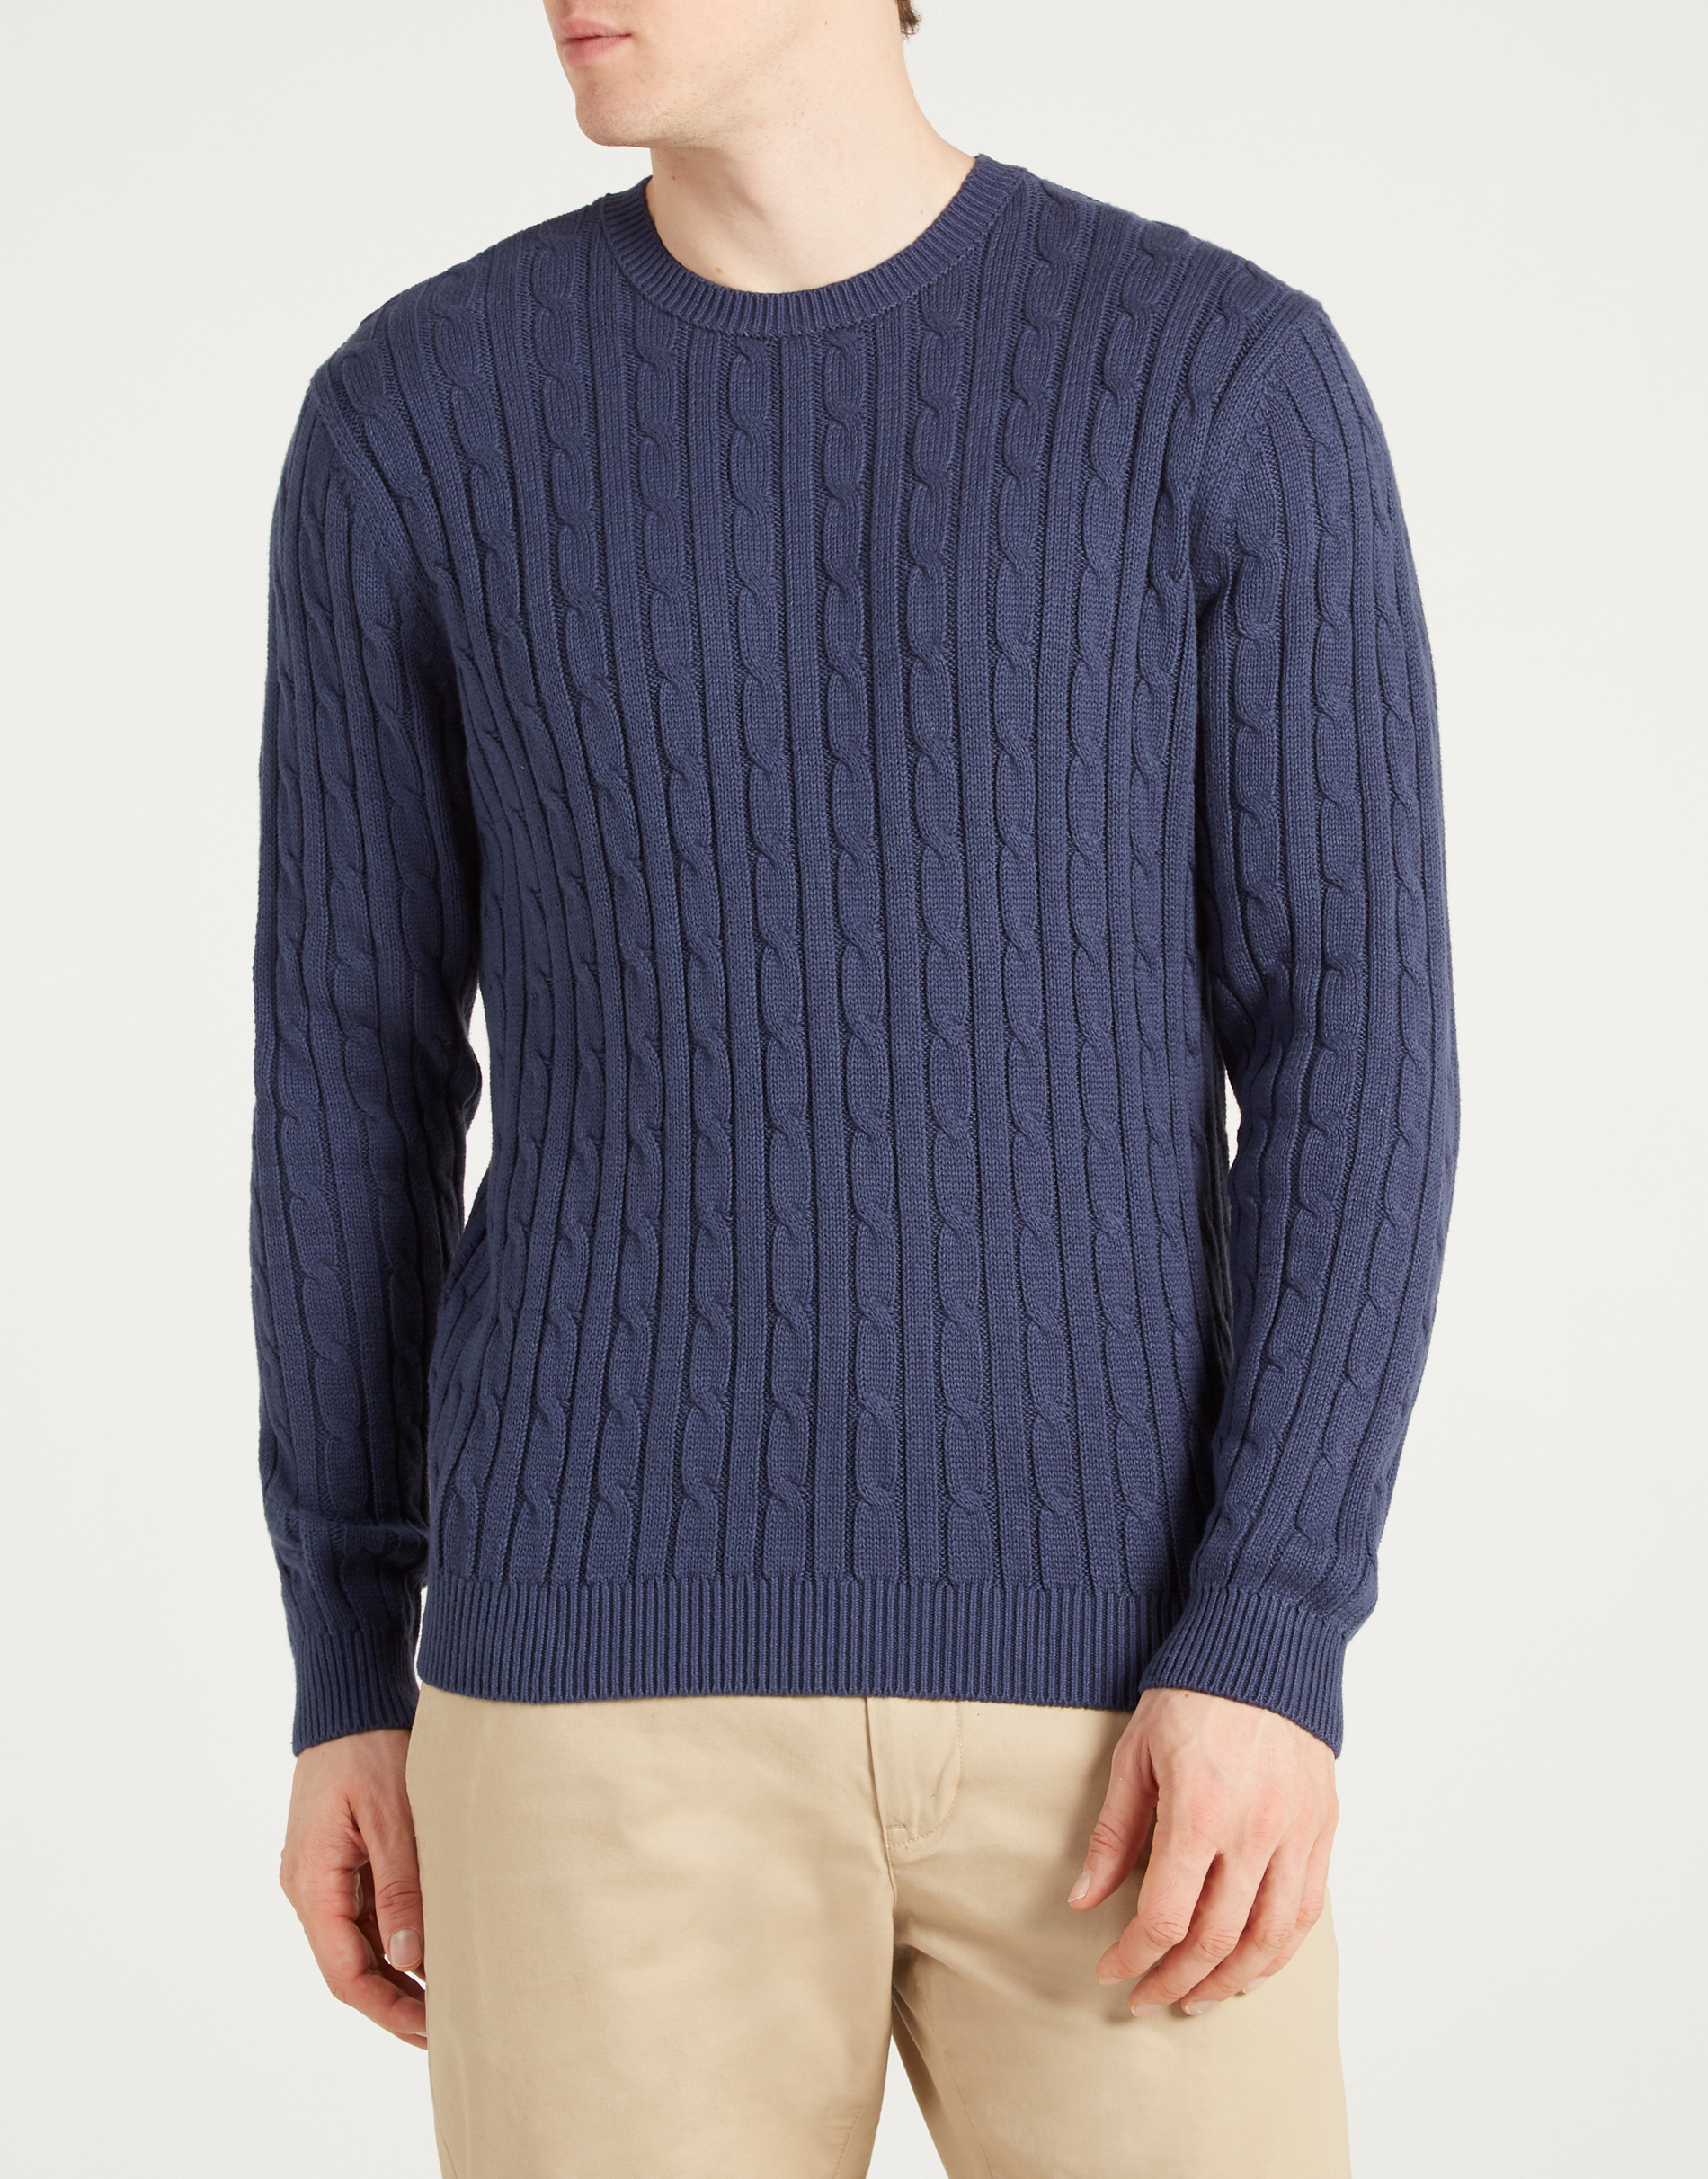 MVP Hainton Cotton Cable Jumper - French Navy